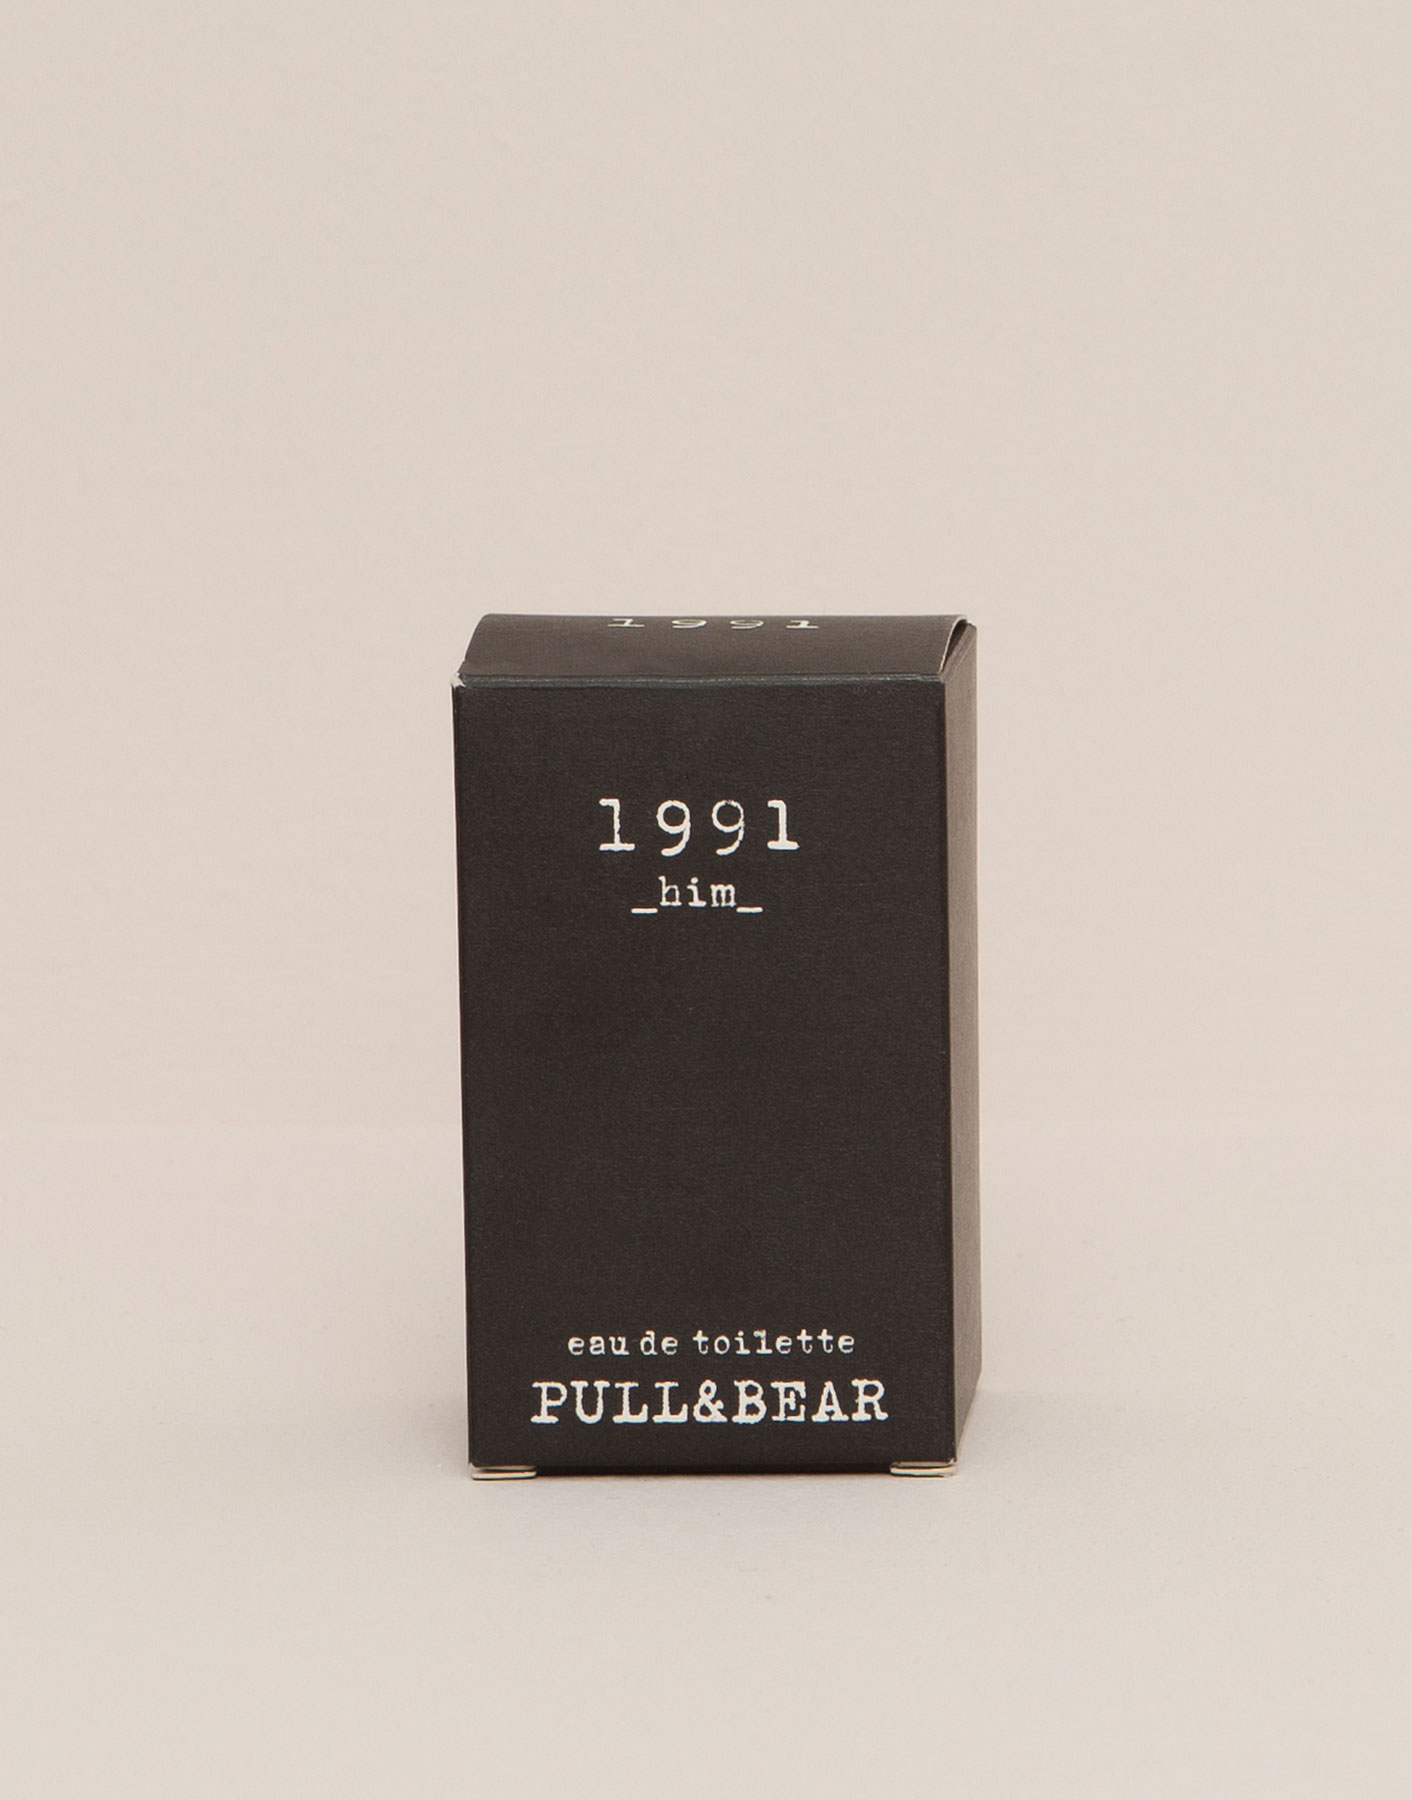 Eau de cologne pull & bear 1991 him